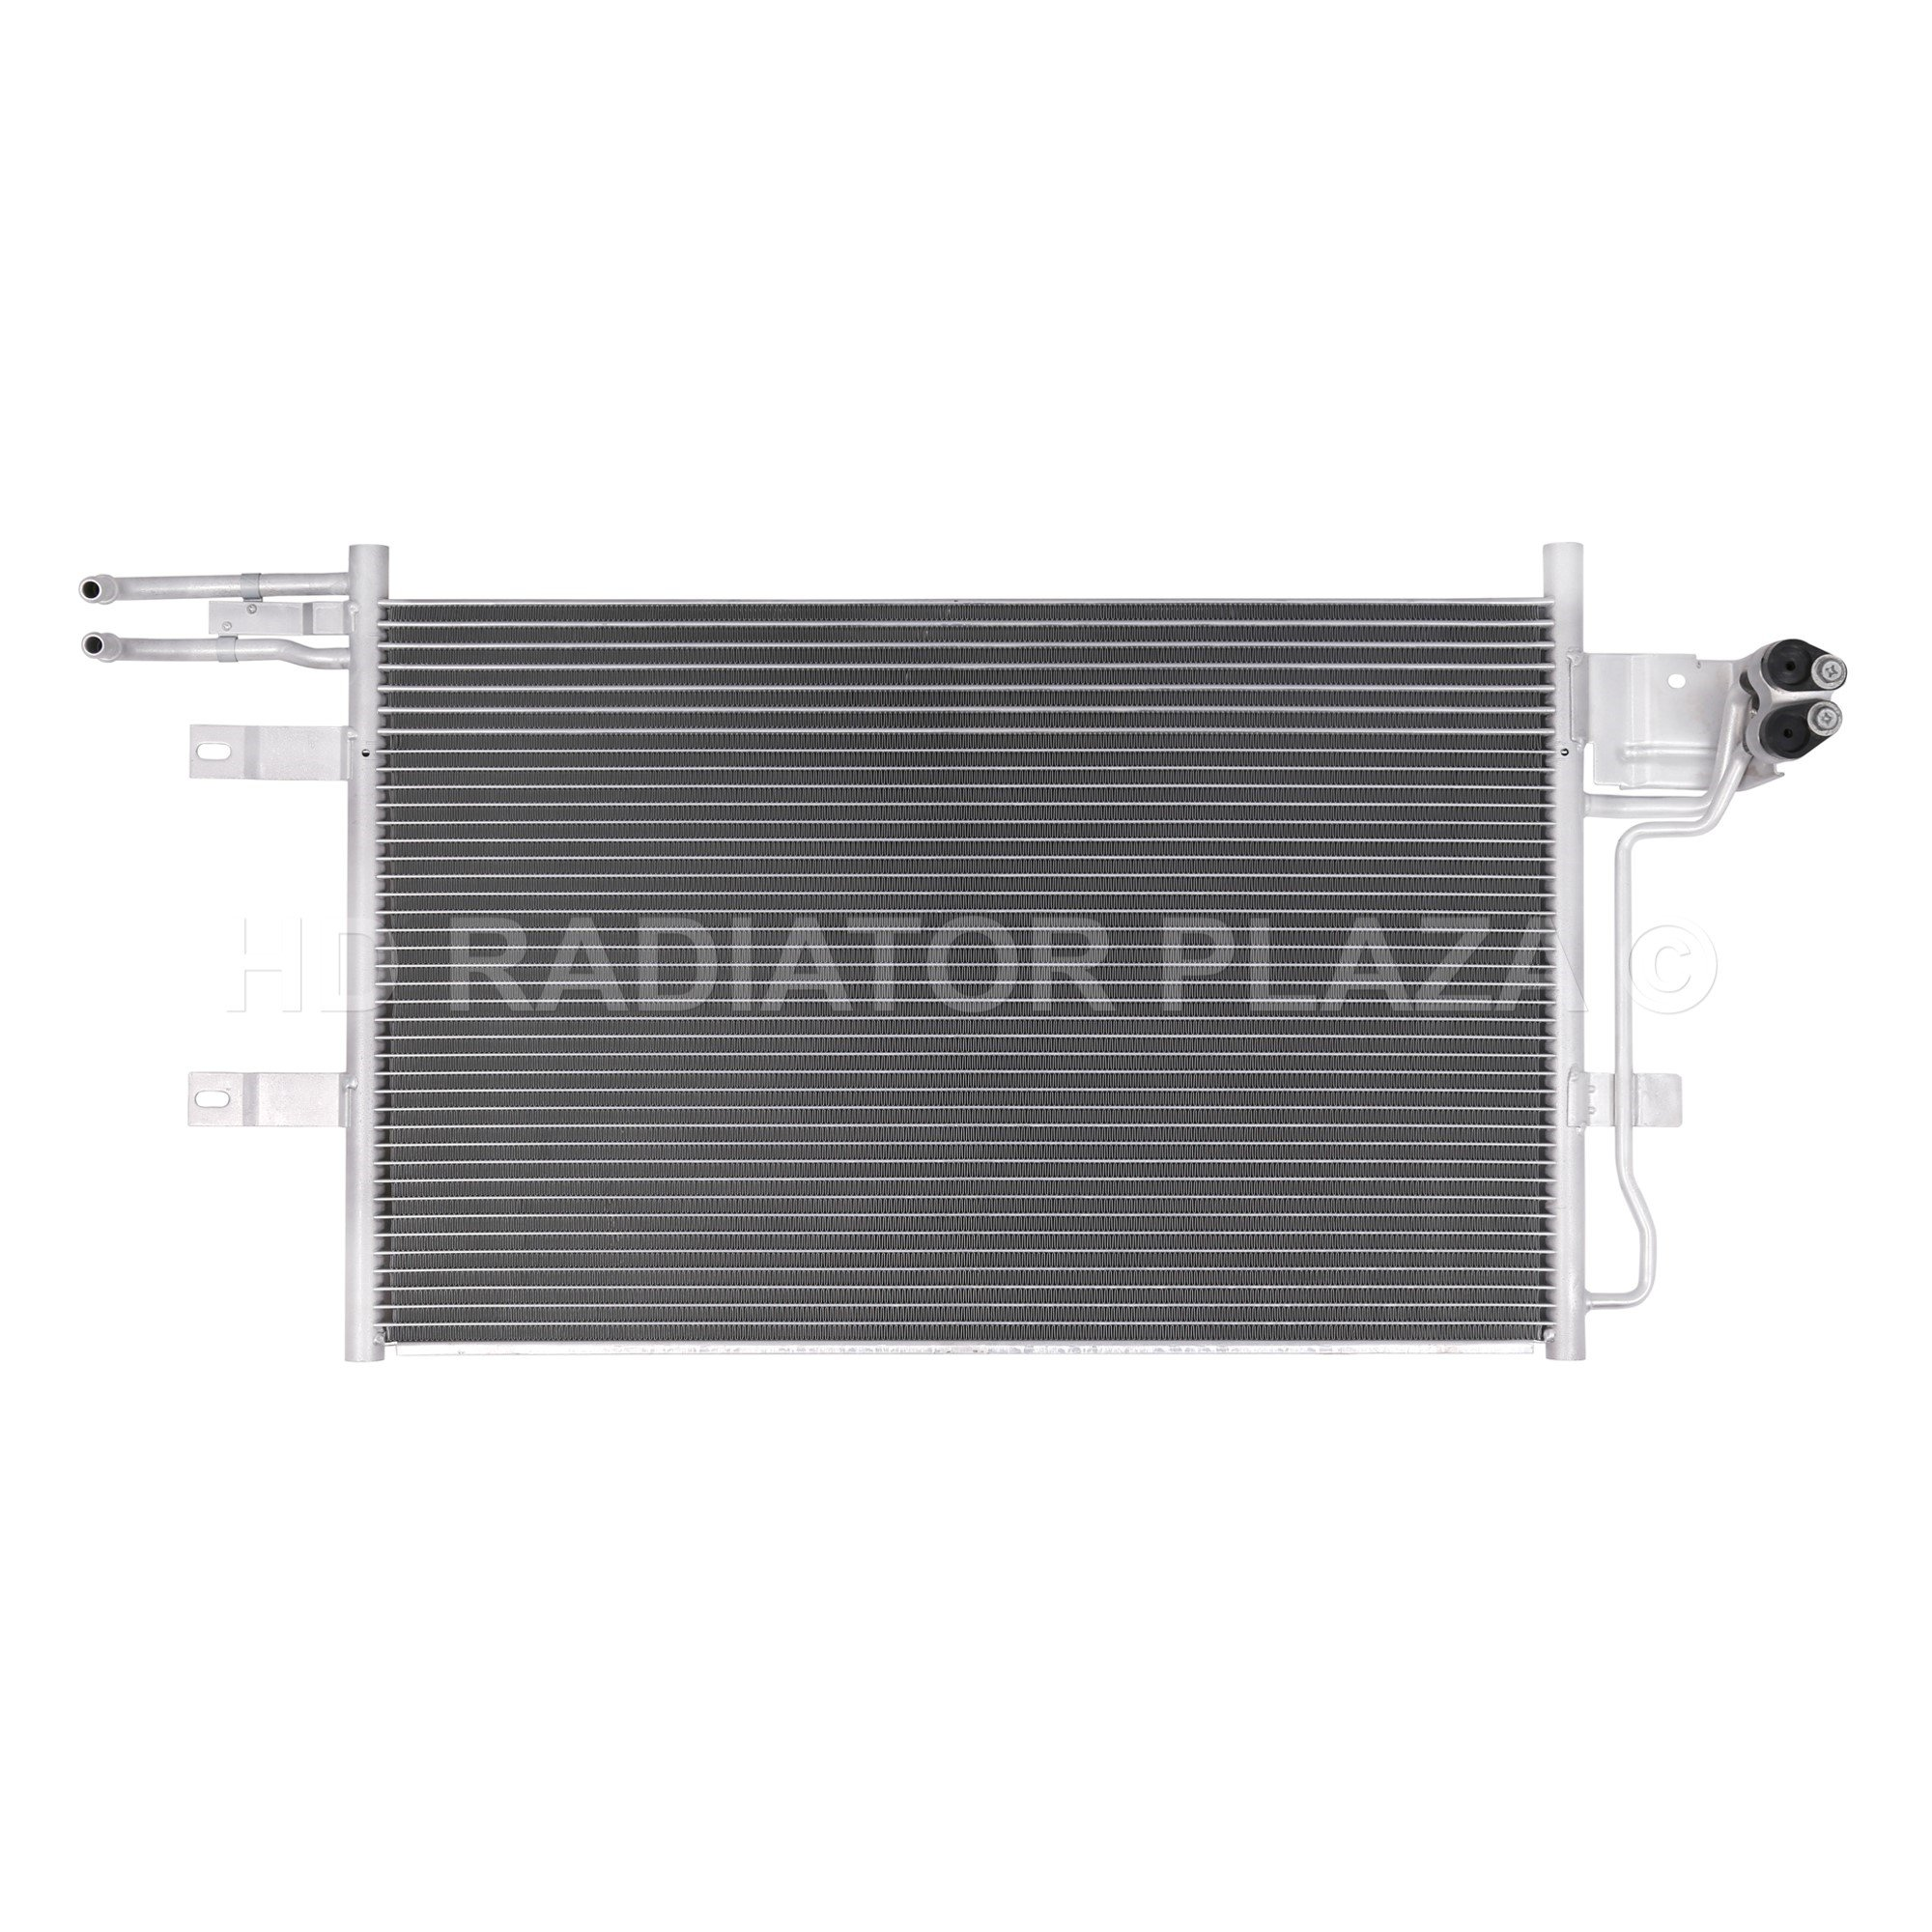 AC Condensers for 08-12 Ford Taurus/Taurus X/Flex, Lincoln MKS/MKT, Mercury Sable